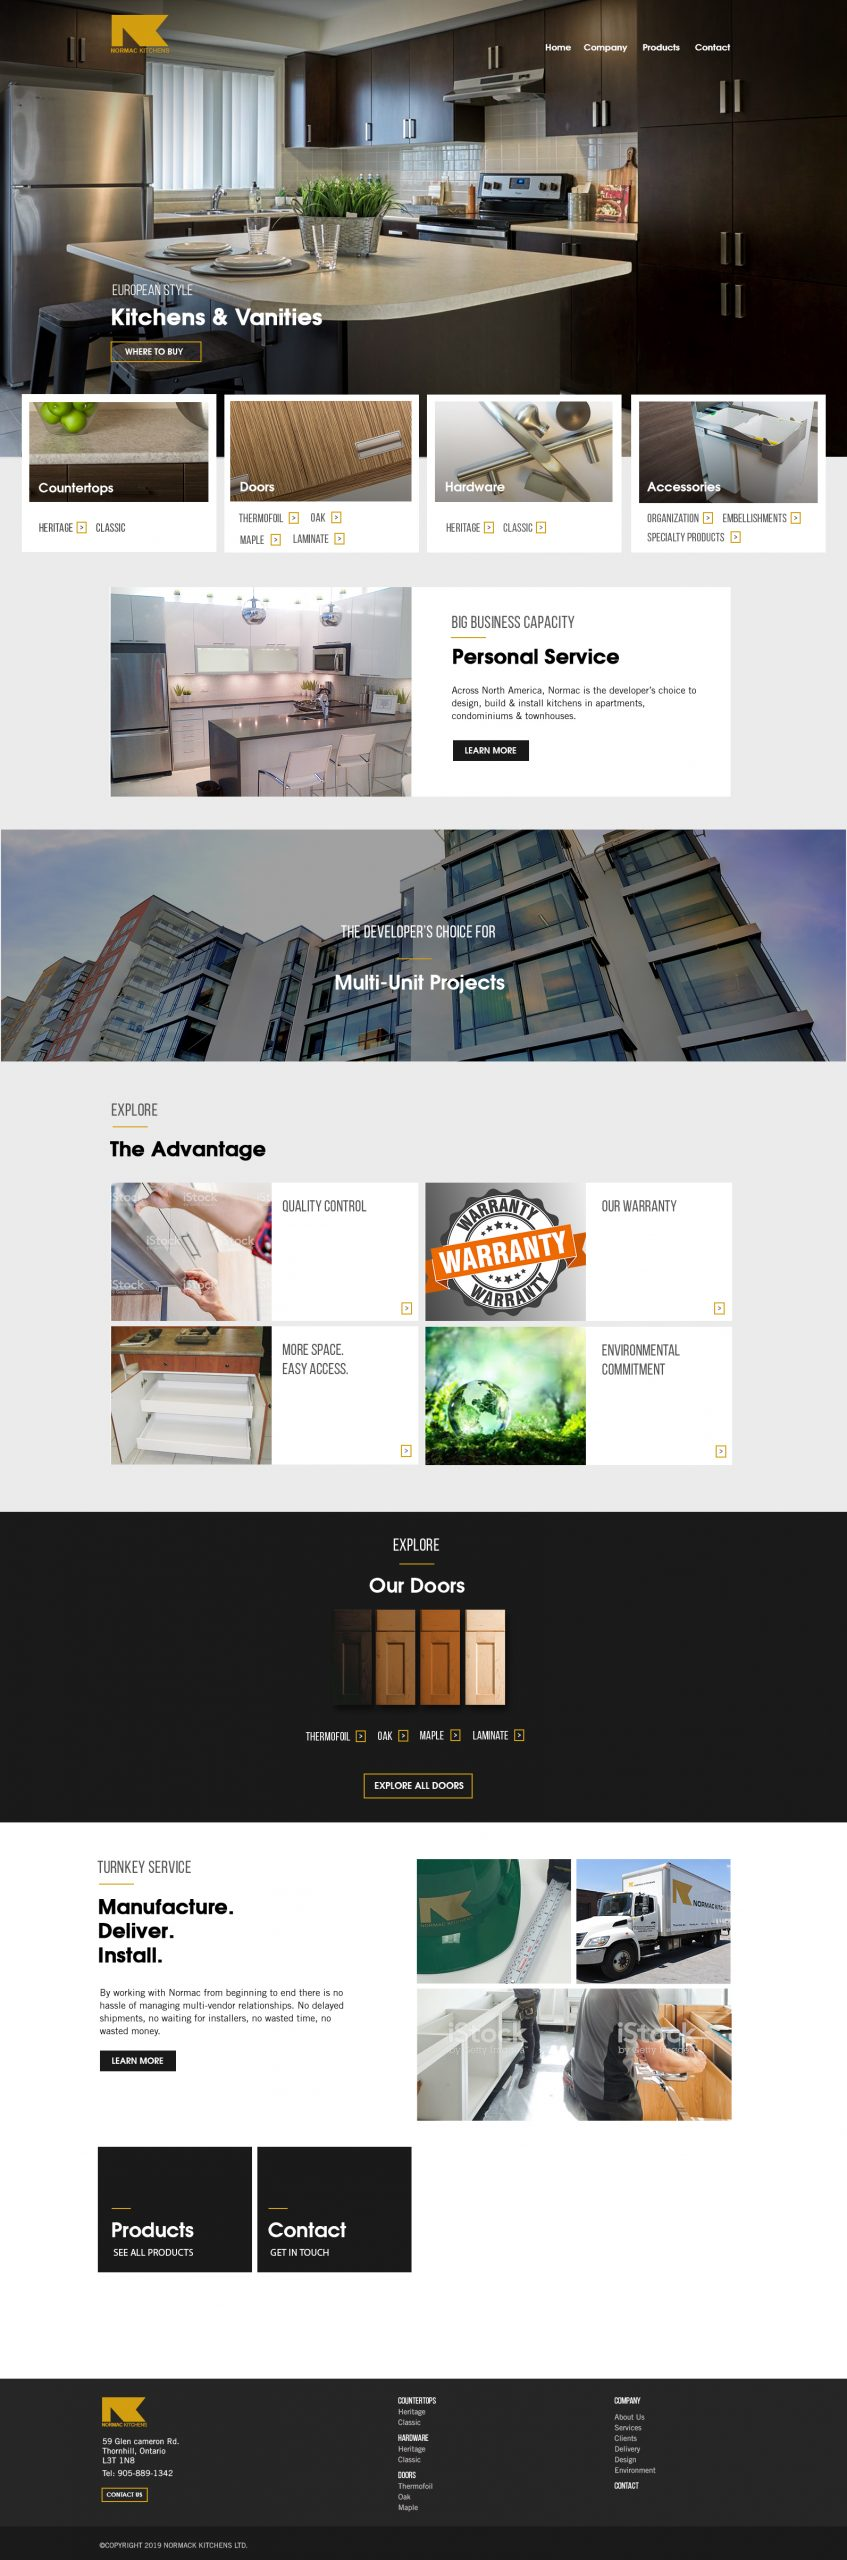 Normac Kitchens Homepage Concept